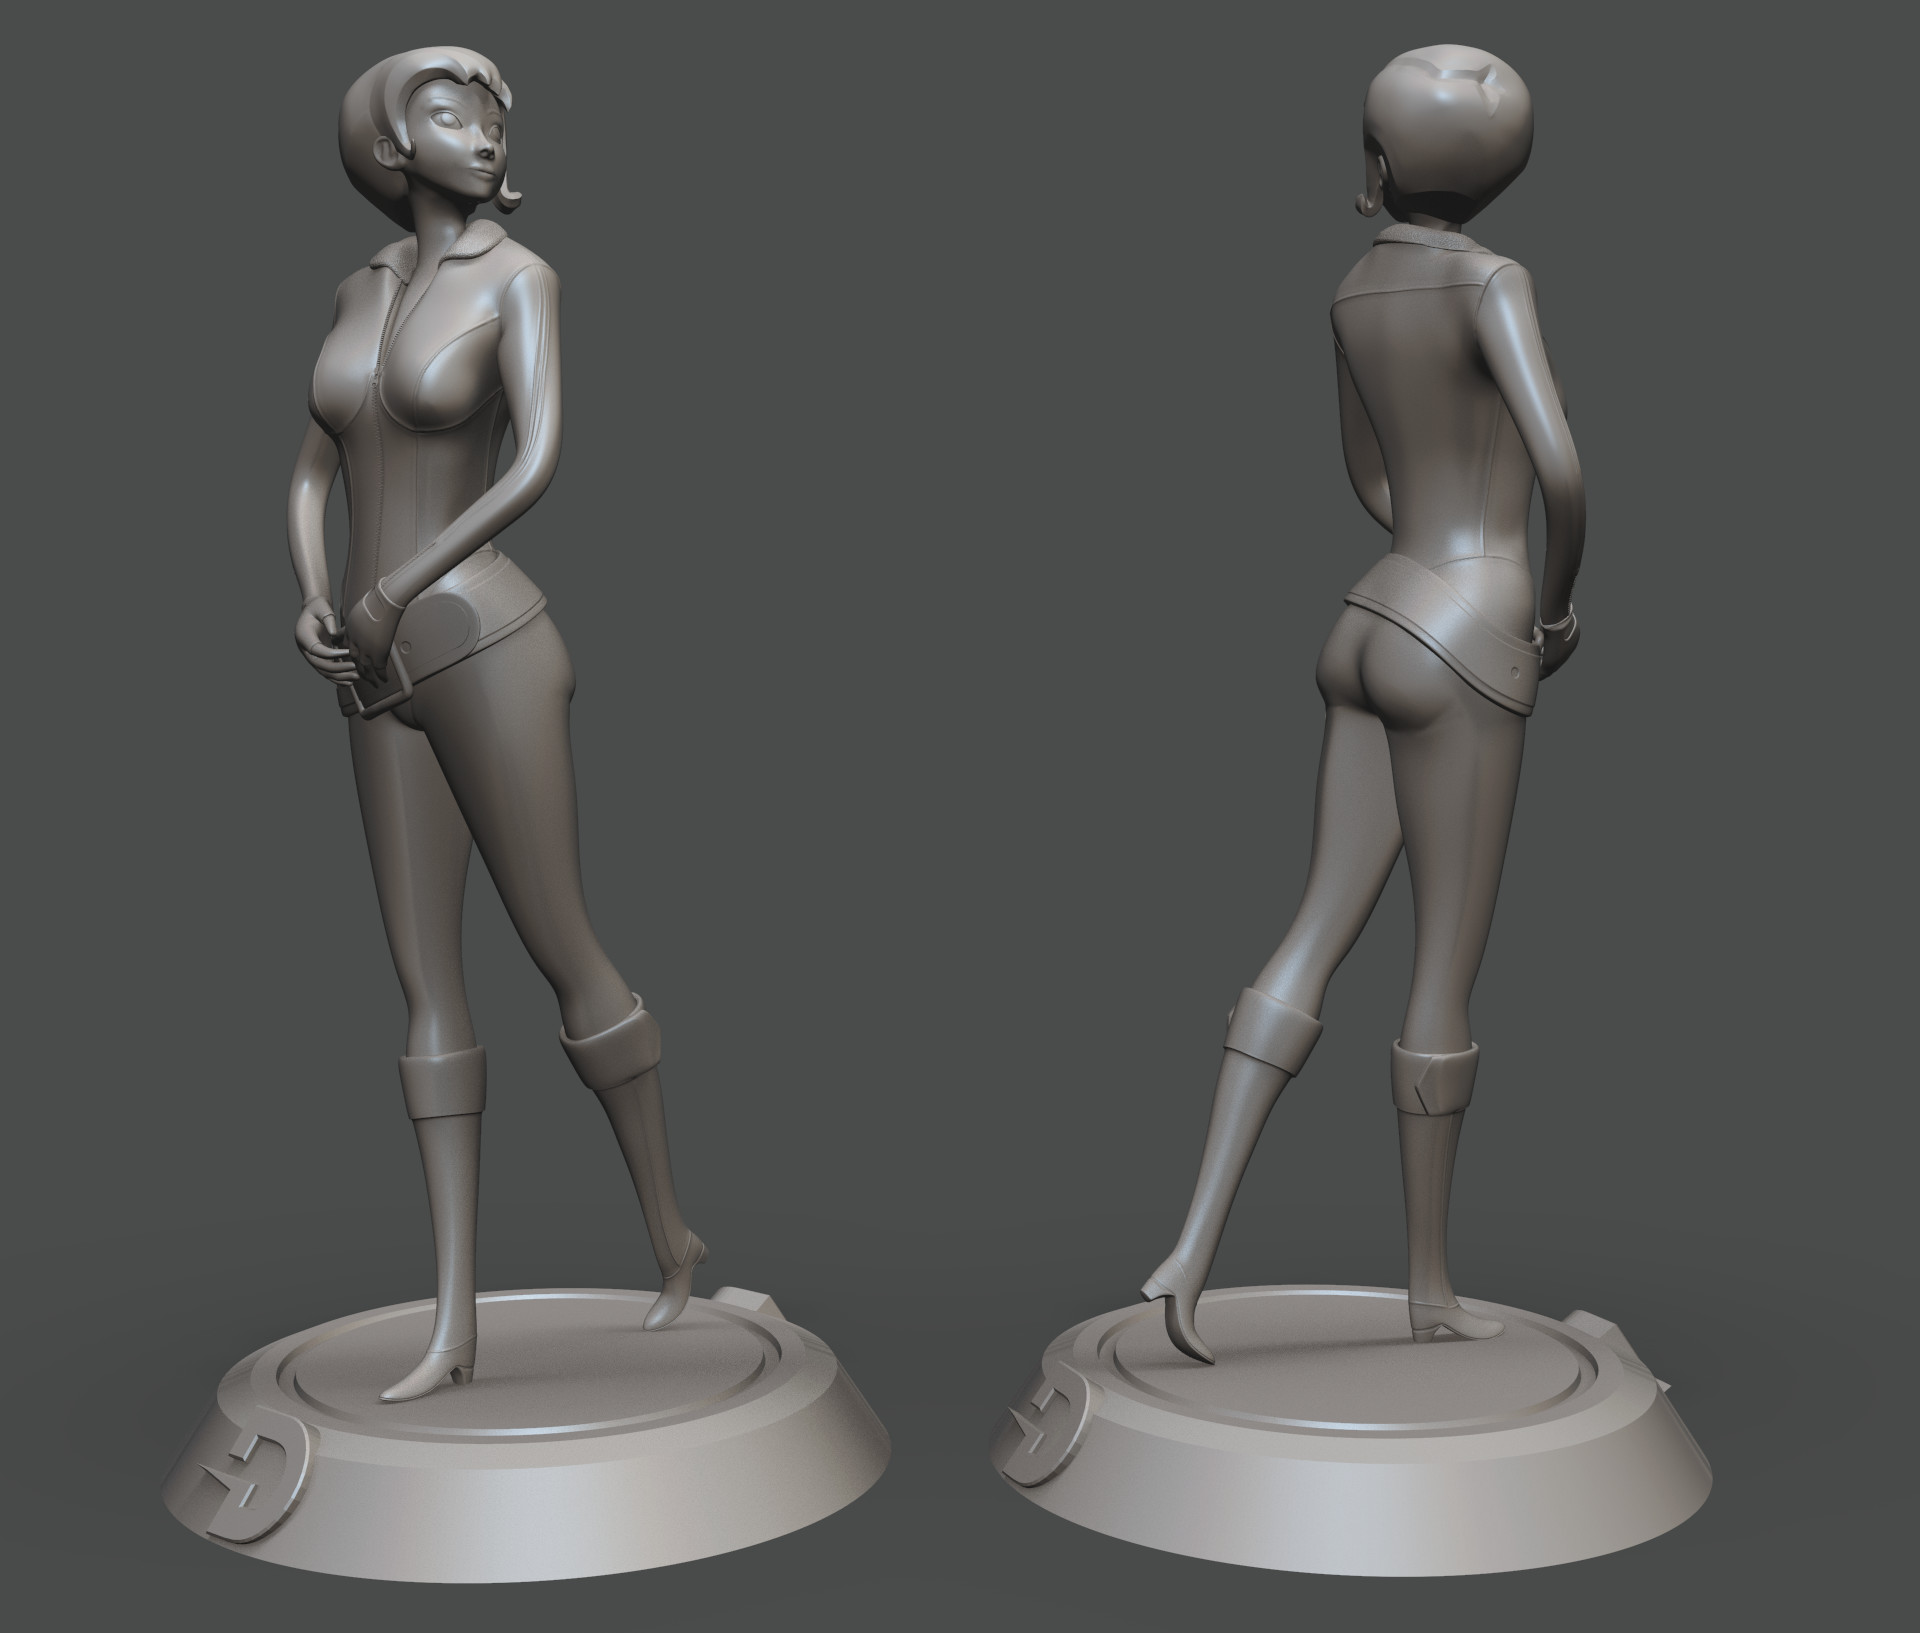 ZBrush sculpt based on the original in game model of Joanna